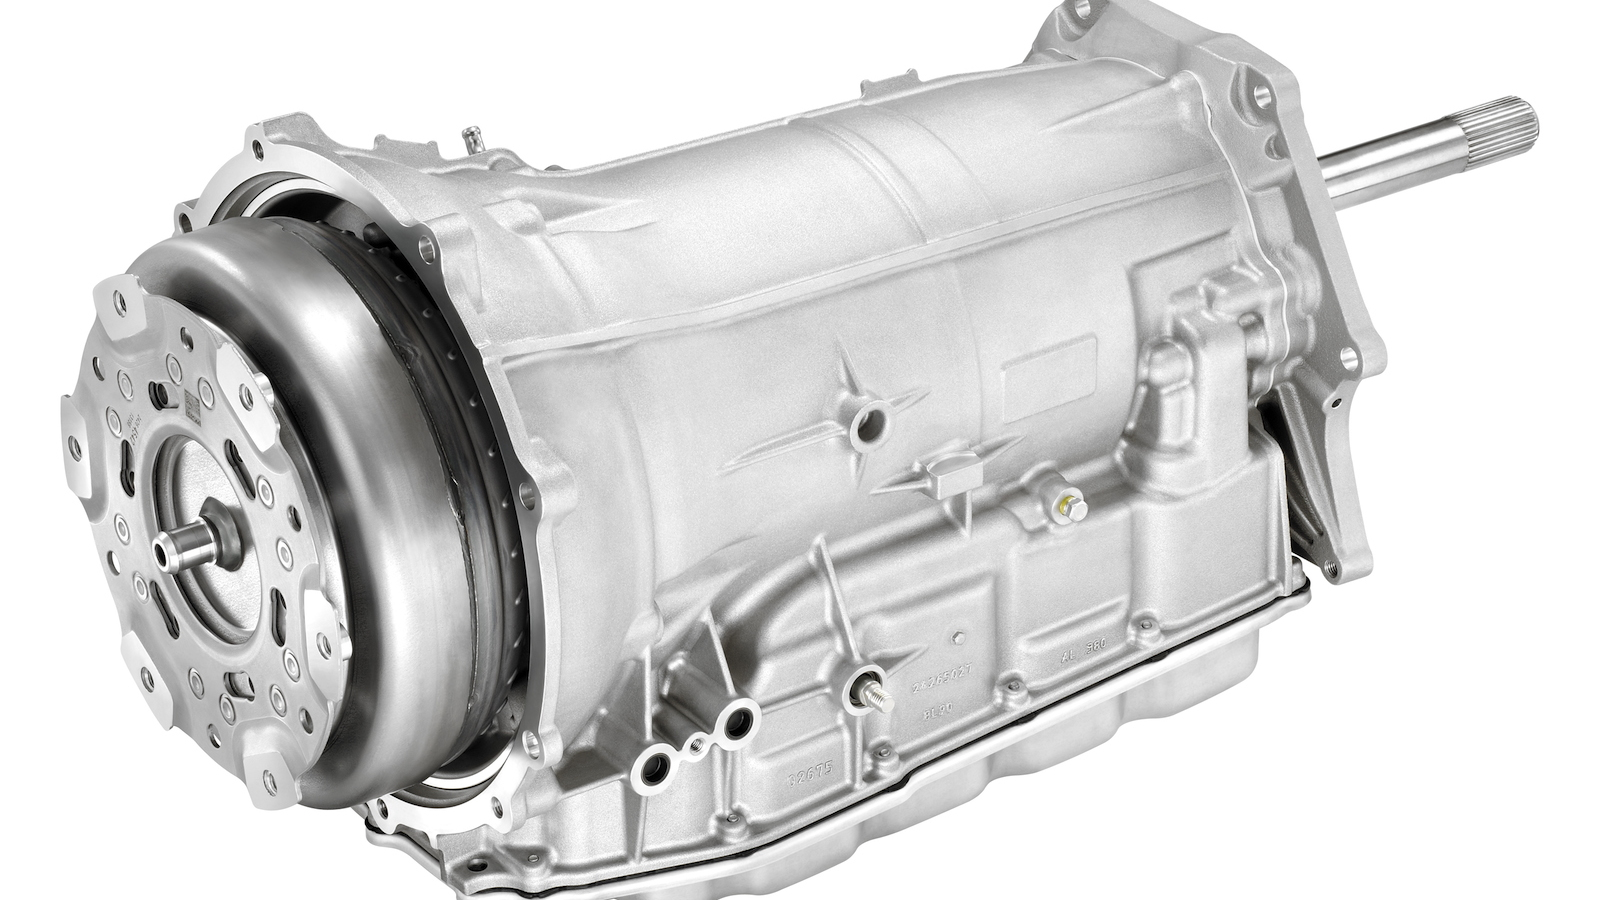 GM Hydra-Matic 8L90 8-speed automatic transmission for the Corvette Stingray and Z06